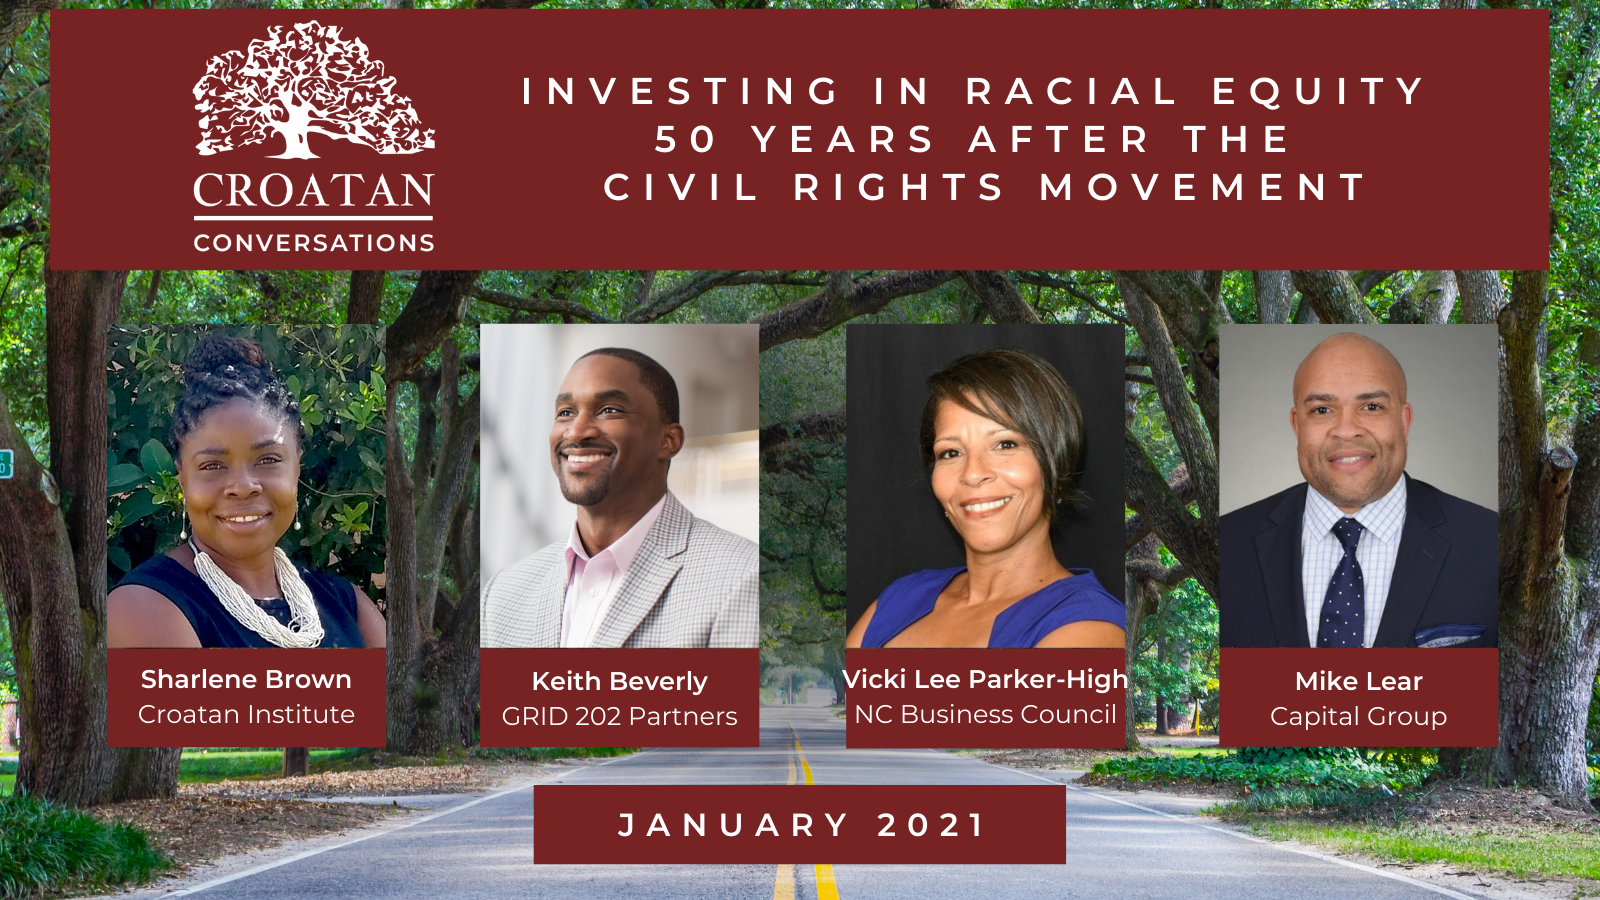 Investing in Racial Equity 50 Years After the Civil Rights Movement